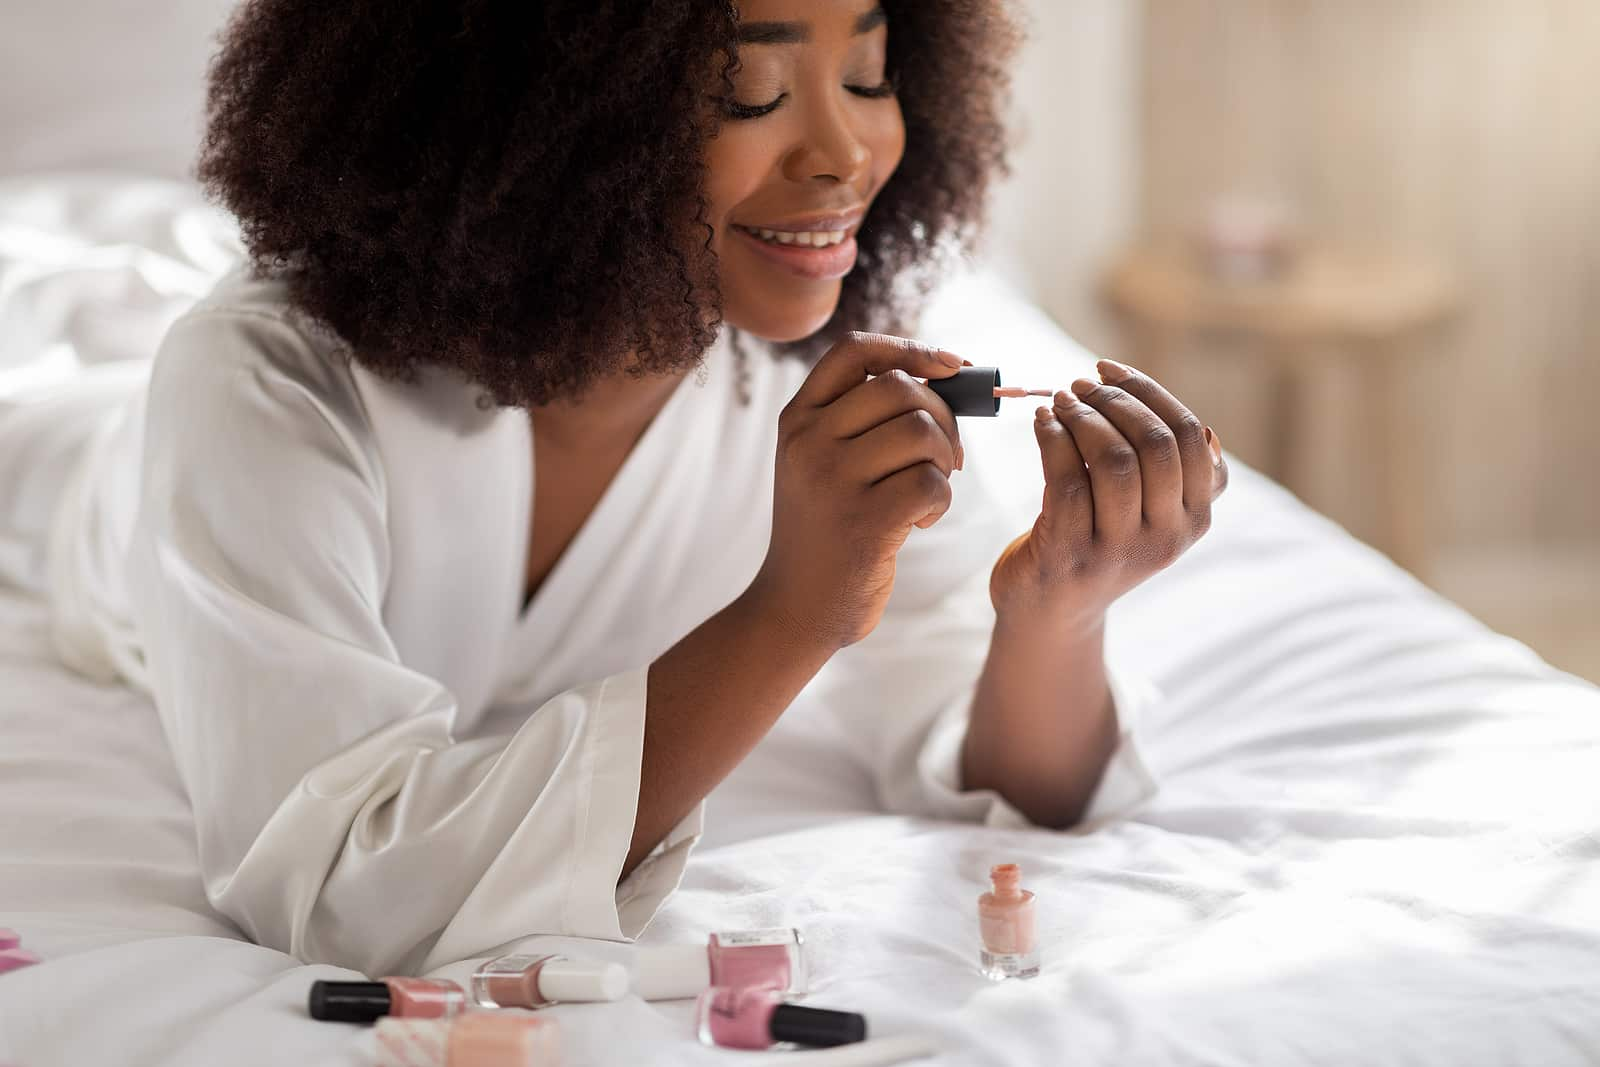 Hormones and nail growth- woman laying on bed in white robe giving herself a manicure